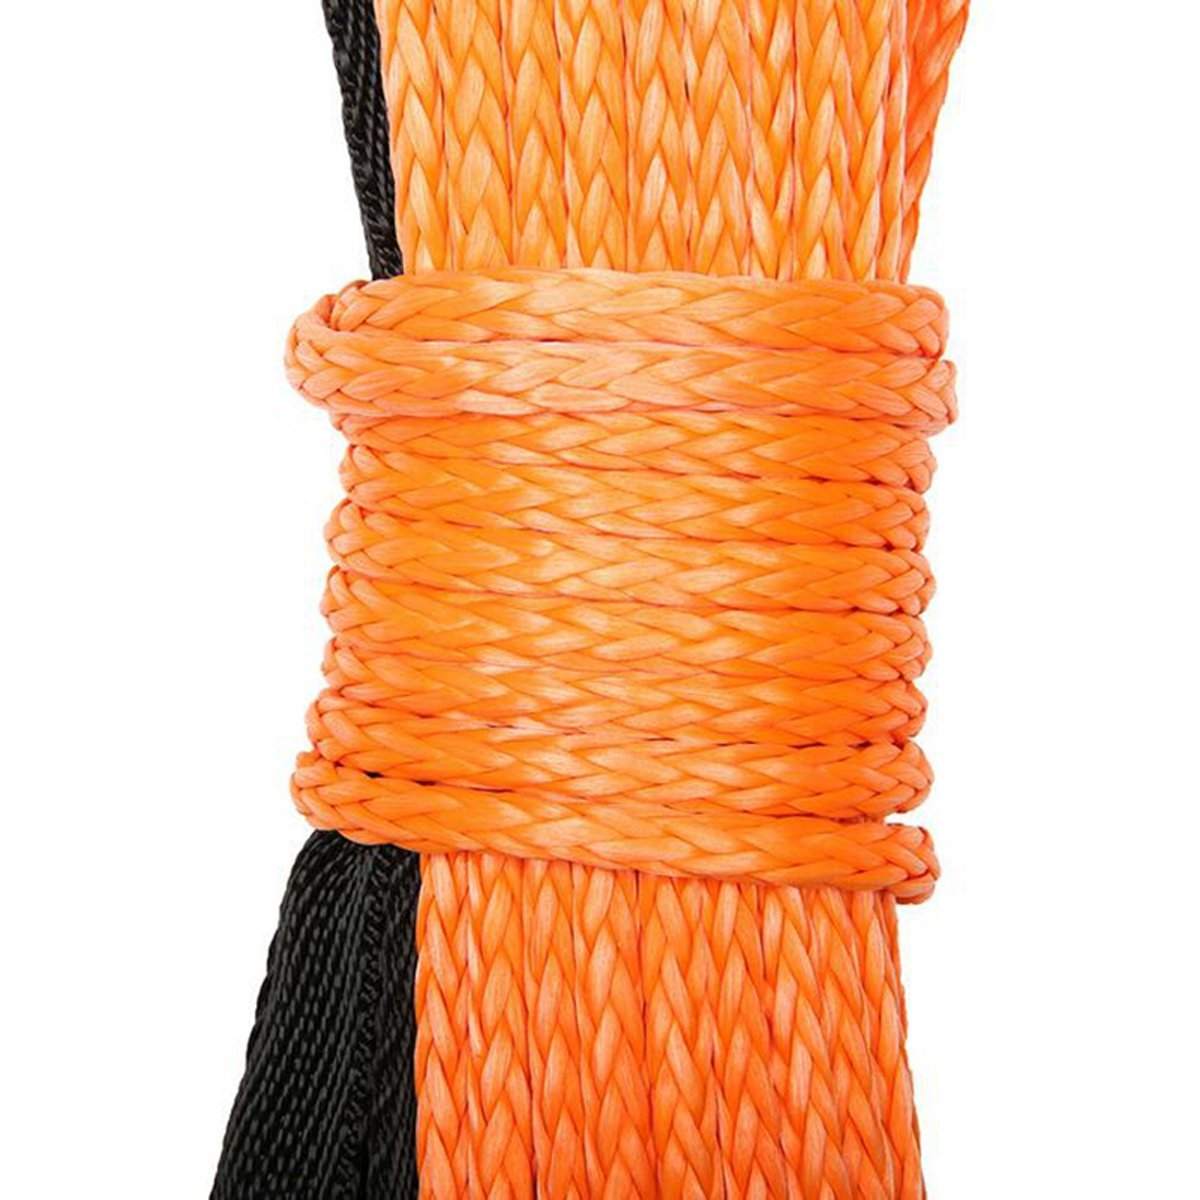 MOEBULB Car Synthetic Winch Rope Kit 5700+LBs 50'x1/4'' Winch Line Cable Sheath Winches ATV UTV SUV Truck Boat Ramsey Stainless Steel Thimble (Orange) by MOEBULB (Image #8)